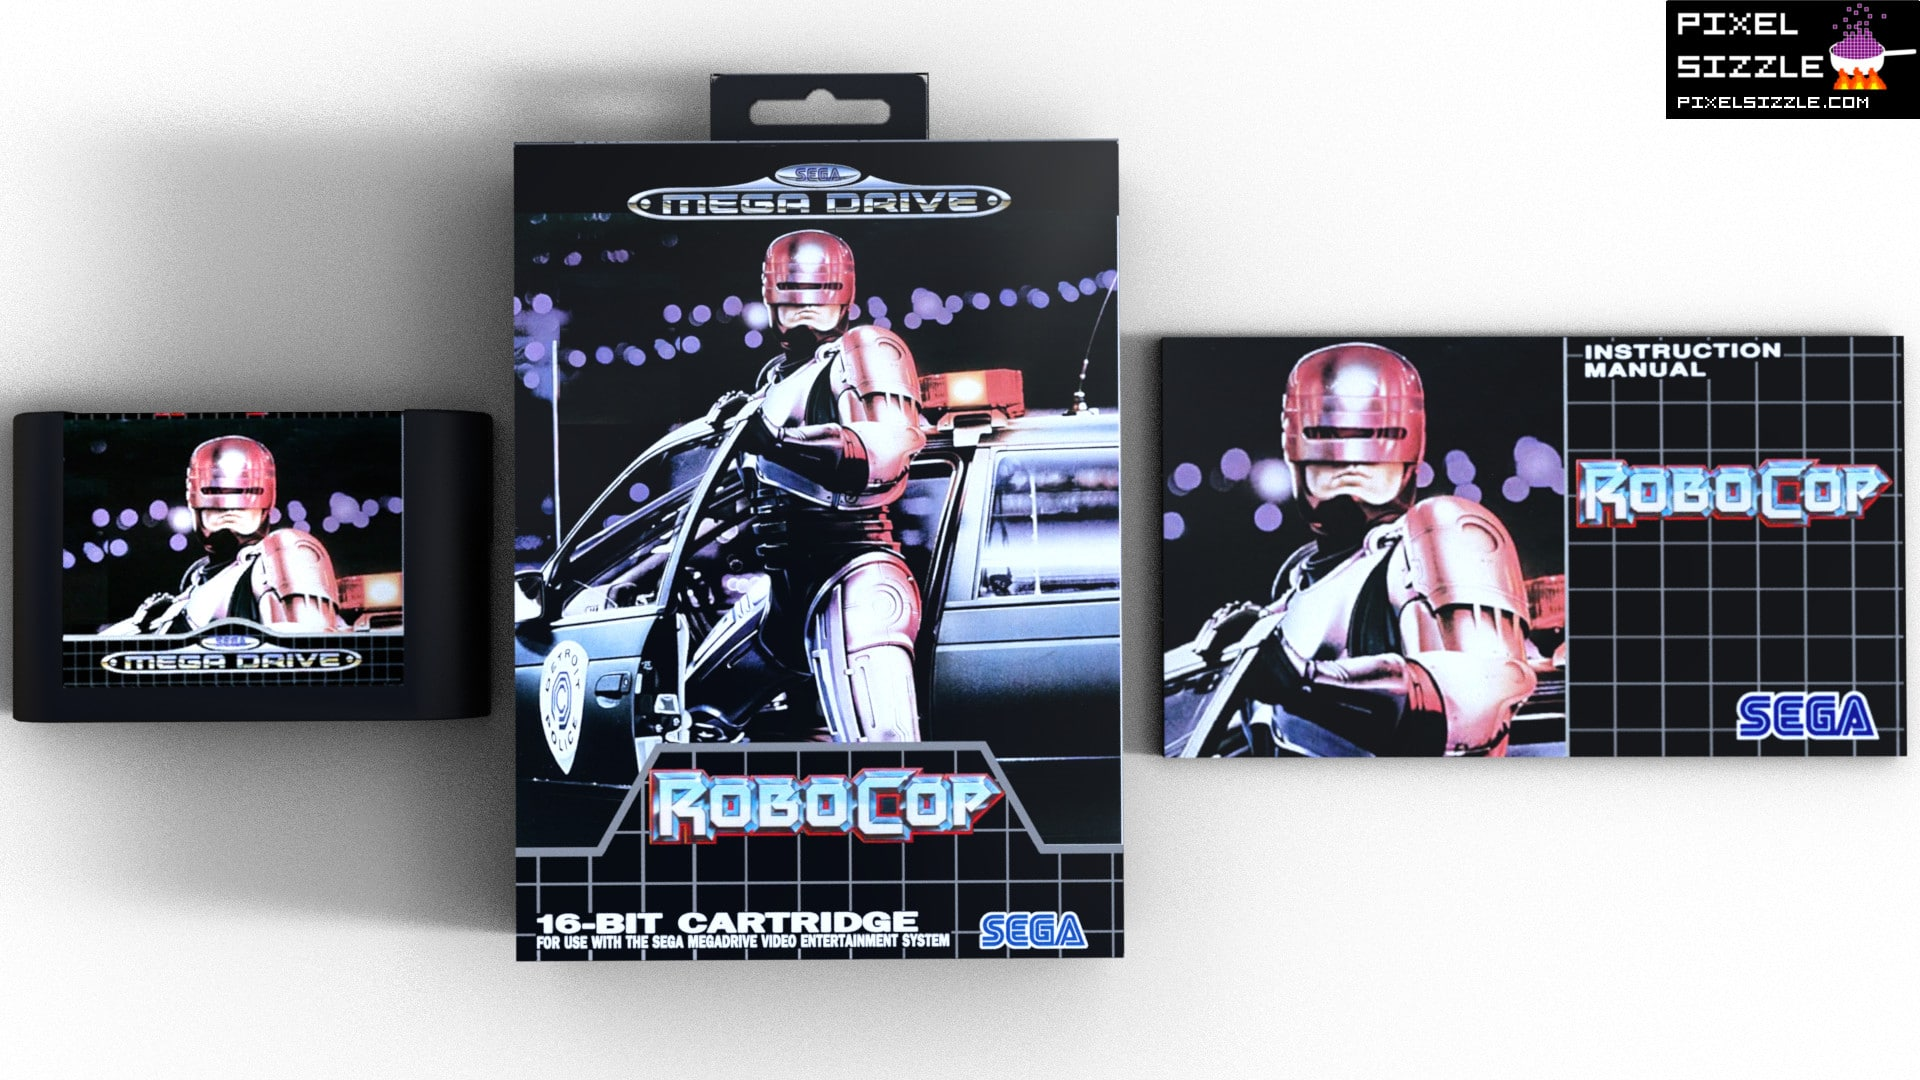 Retro Game Reviews. Robocop. Sega Genesis. Sega Megadrive